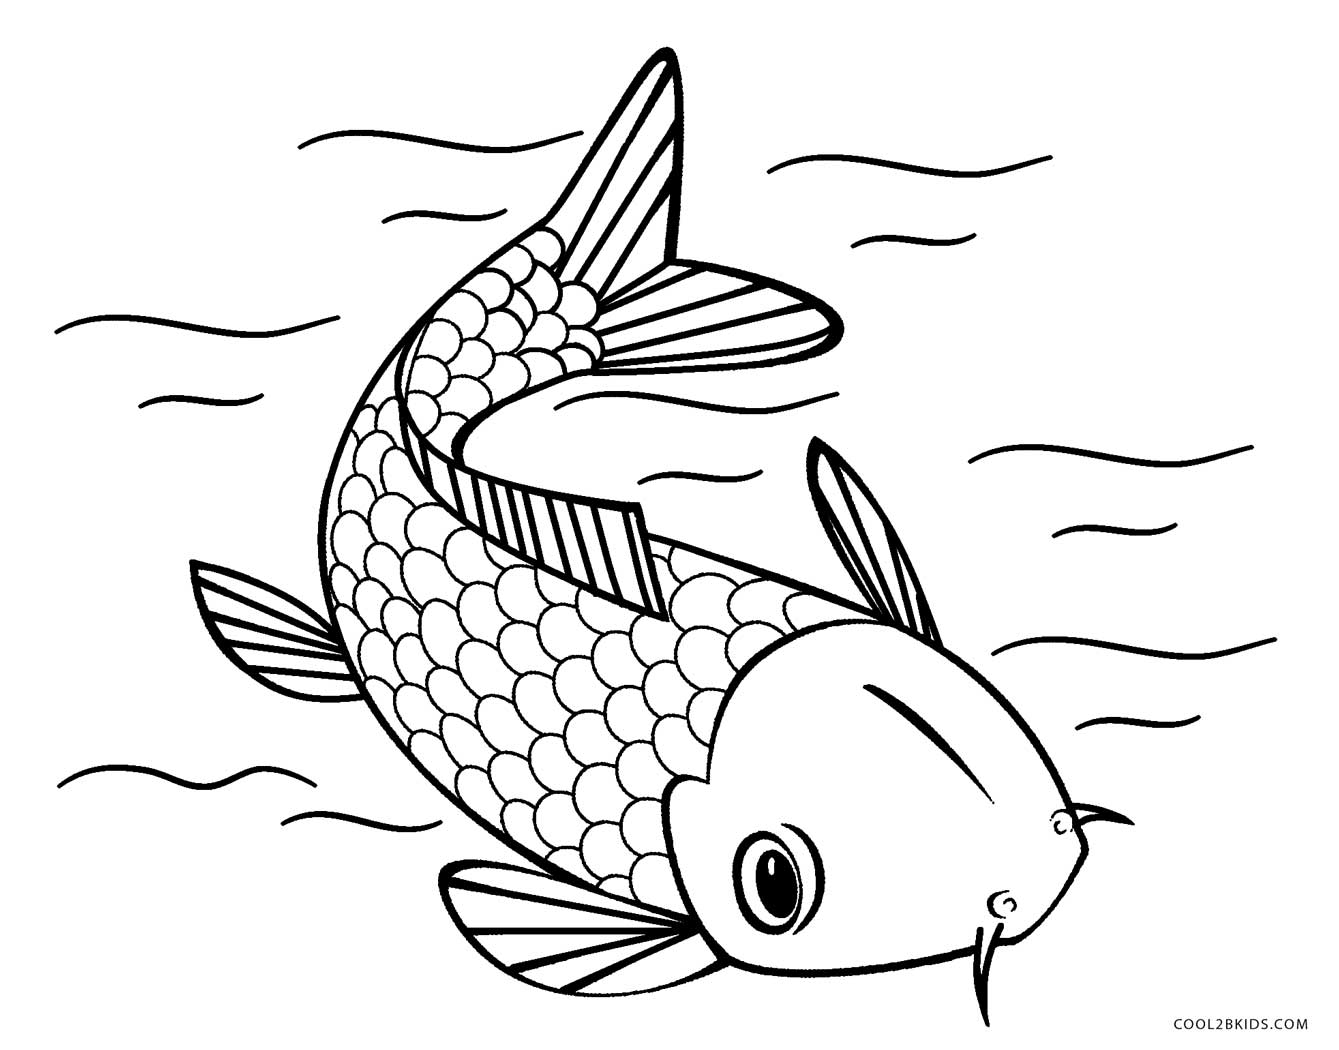 fish color fish coloring pages for kids 14 pics how to draw in 1 fish color